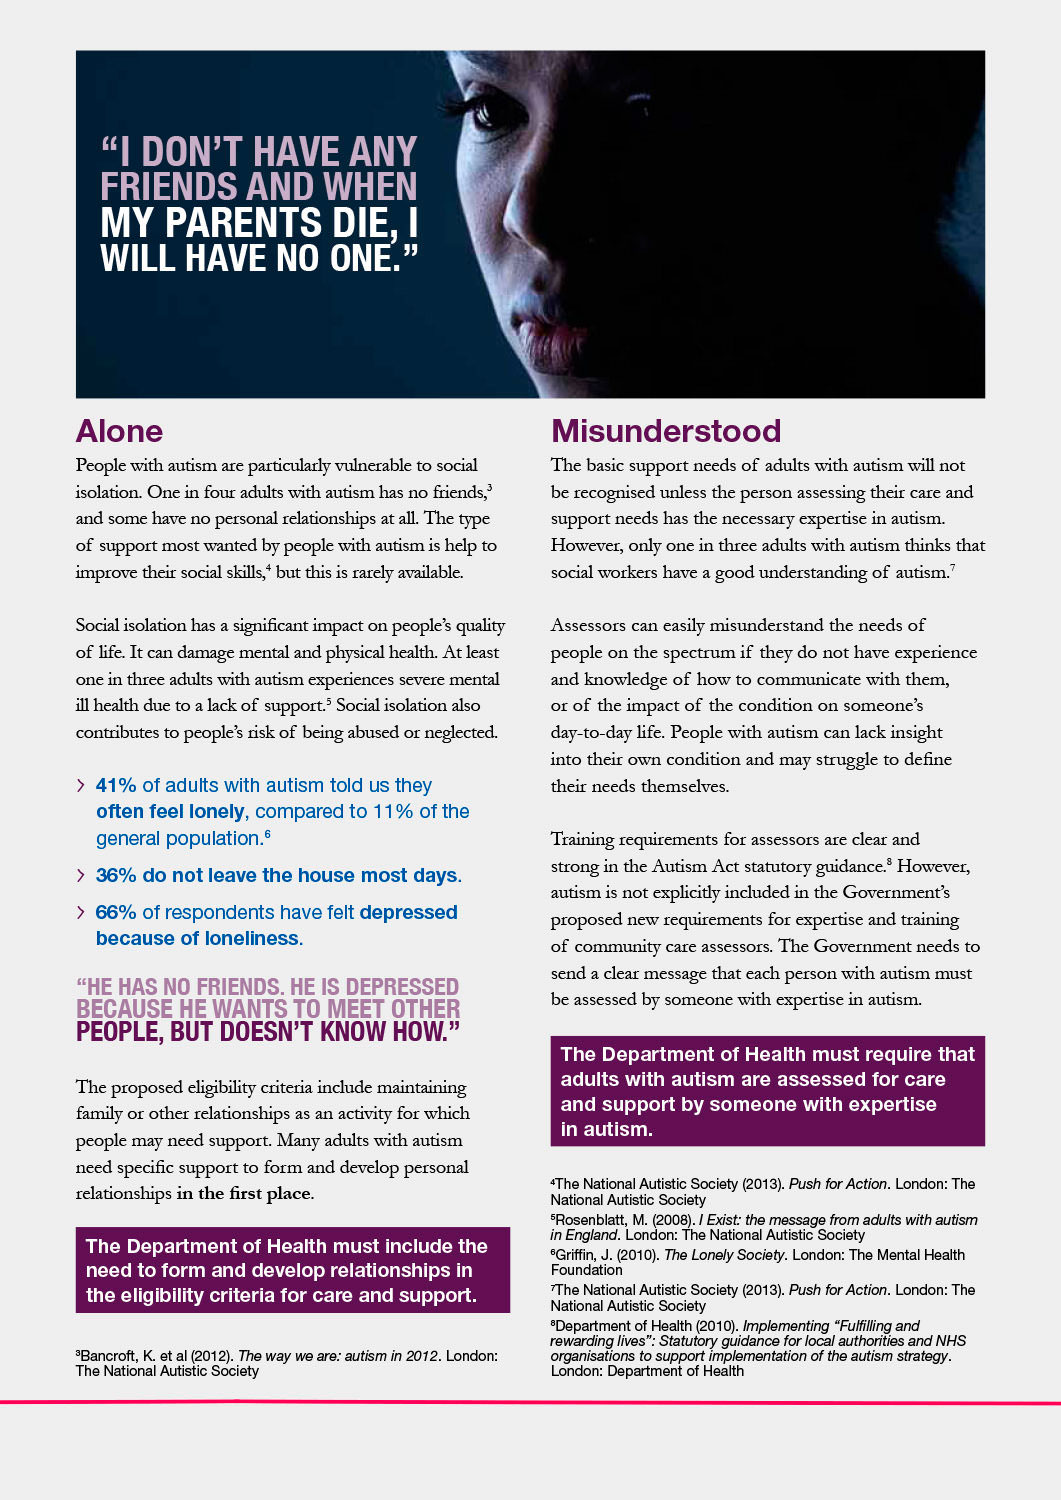 National-Autistic-Society-Careless-campaign-report-(1)-5.jpg